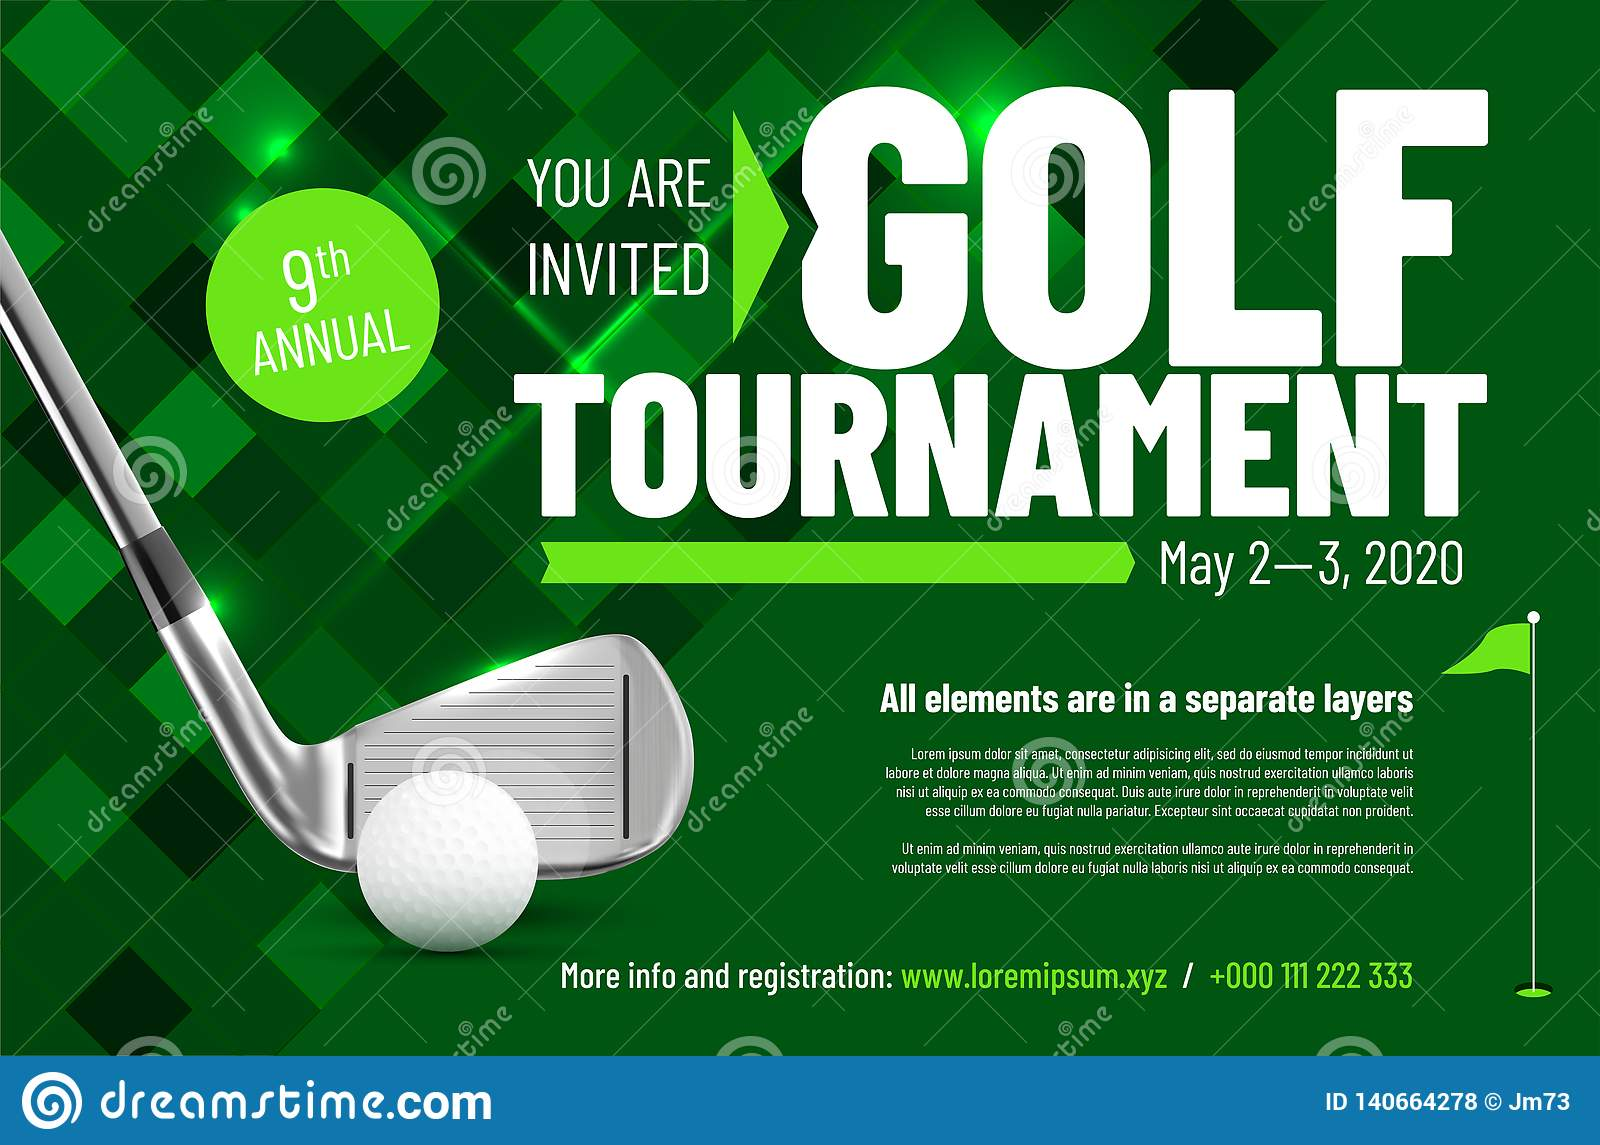 Template for your golf tournament invitation with sample text